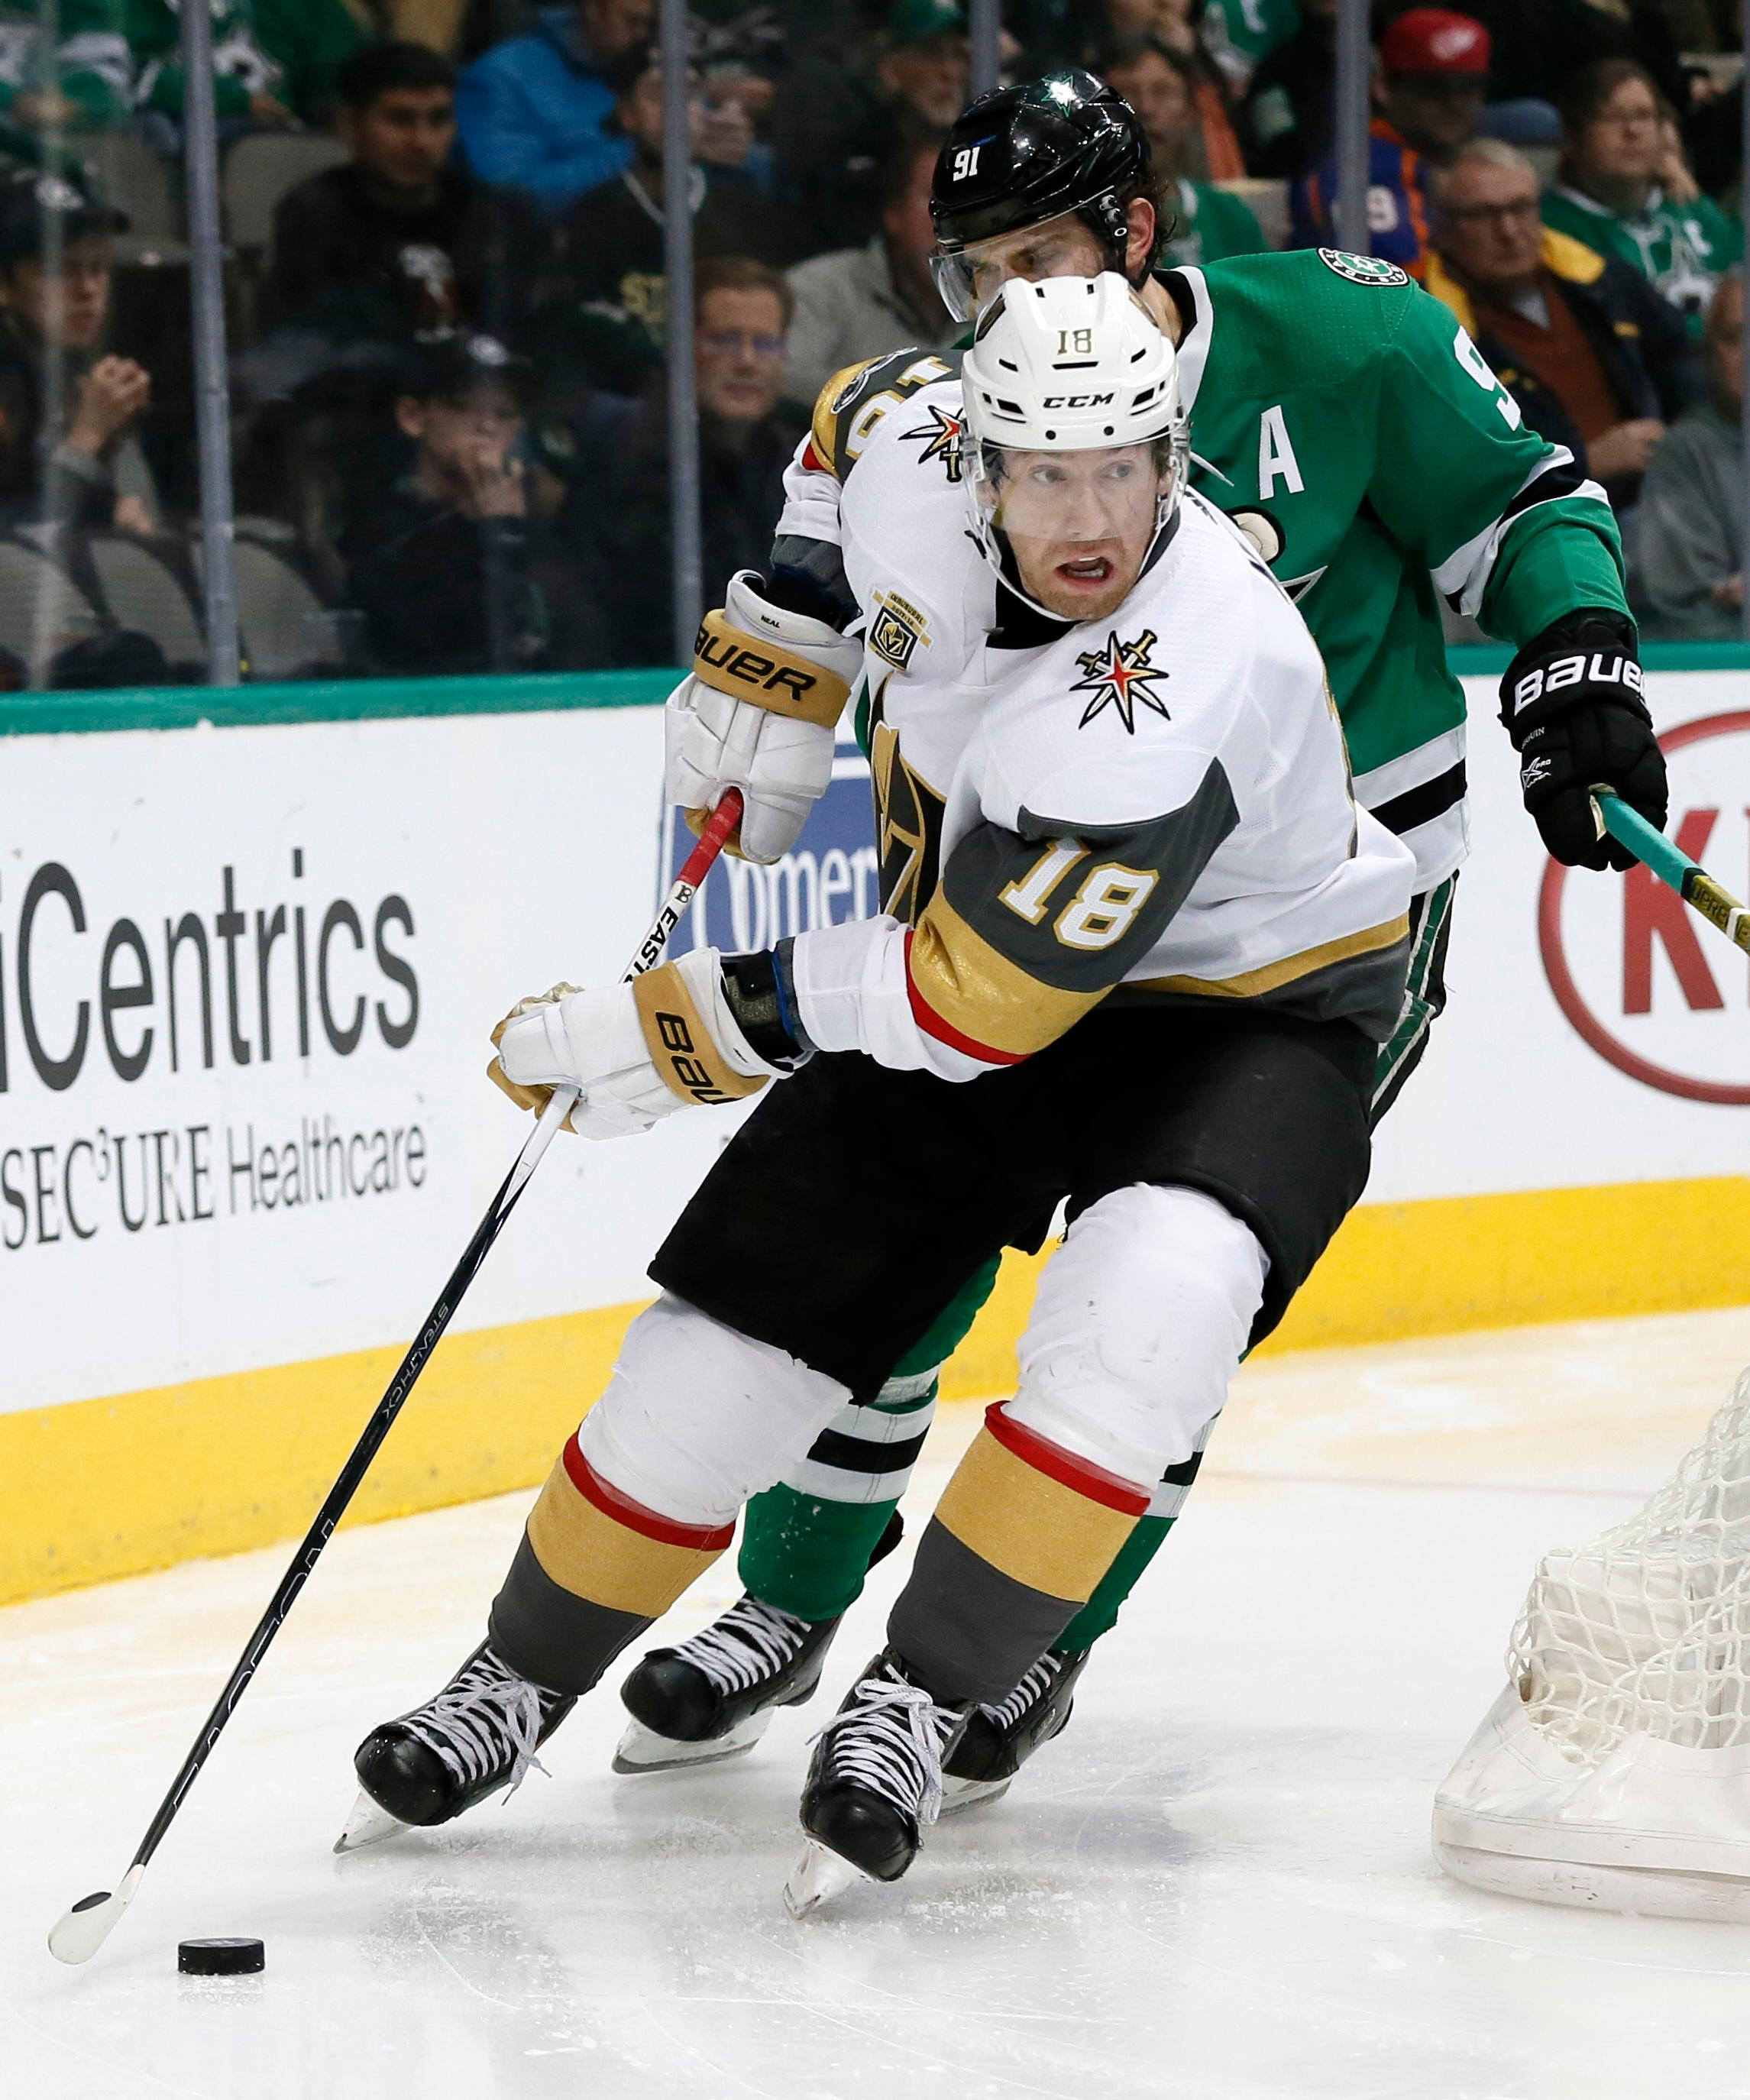 Vegas Golden Knights left wing James Neal (18) handles the puck as Dallas Stars center Tyler Seguin gives chase during the second period of an NHL hockey game, Saturday, Dec. 9, 2017, in Dallas . (AP Photo/Tony Gutierrez)